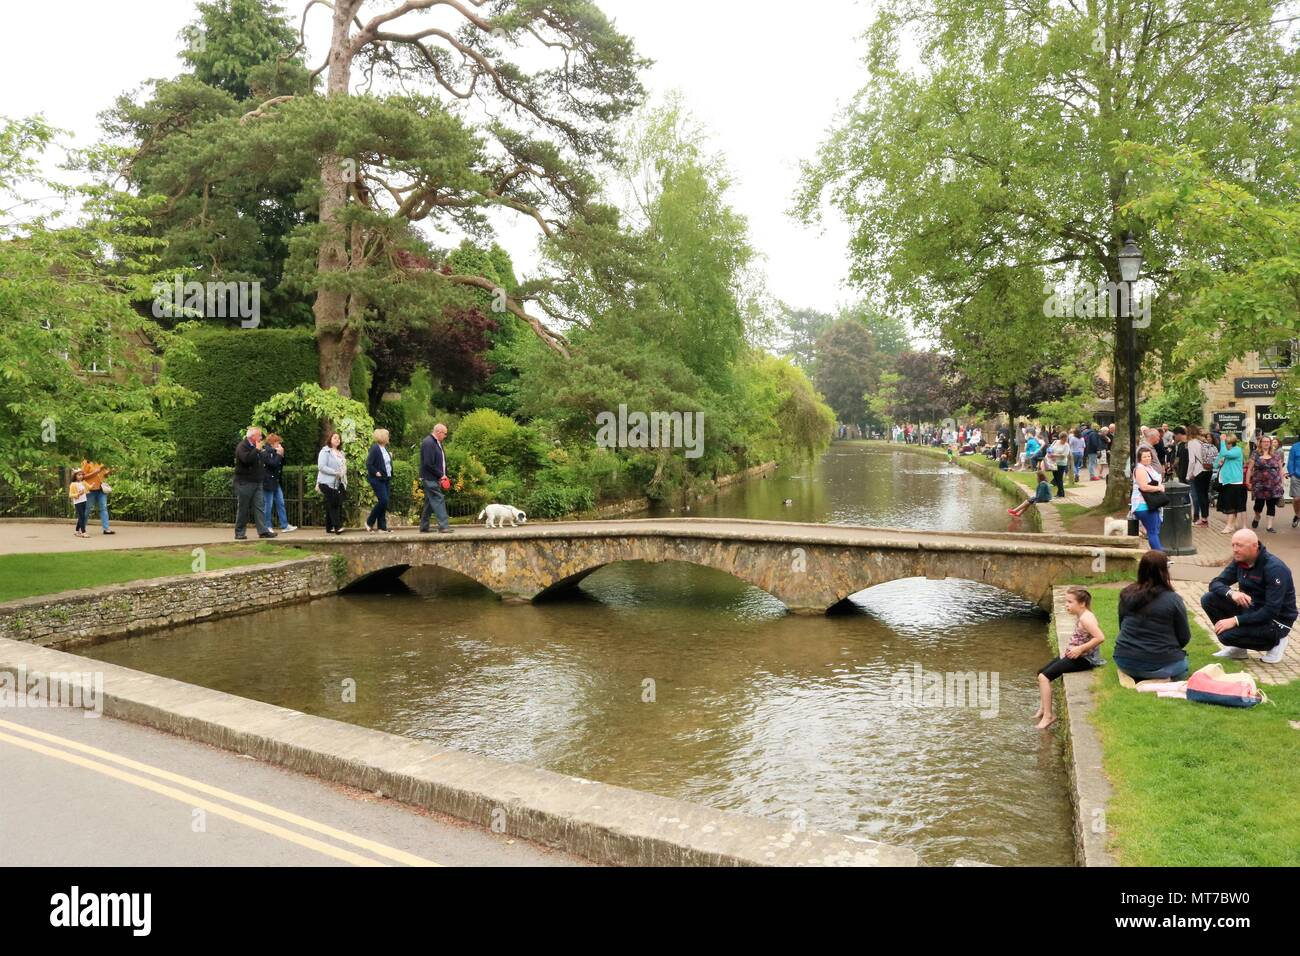 People enjoying the May Bank Holiday at Bourton on the Water, Gloucestershire, UK within the Cotswolds Area of Outstanding Natural Beauty - Stock Image